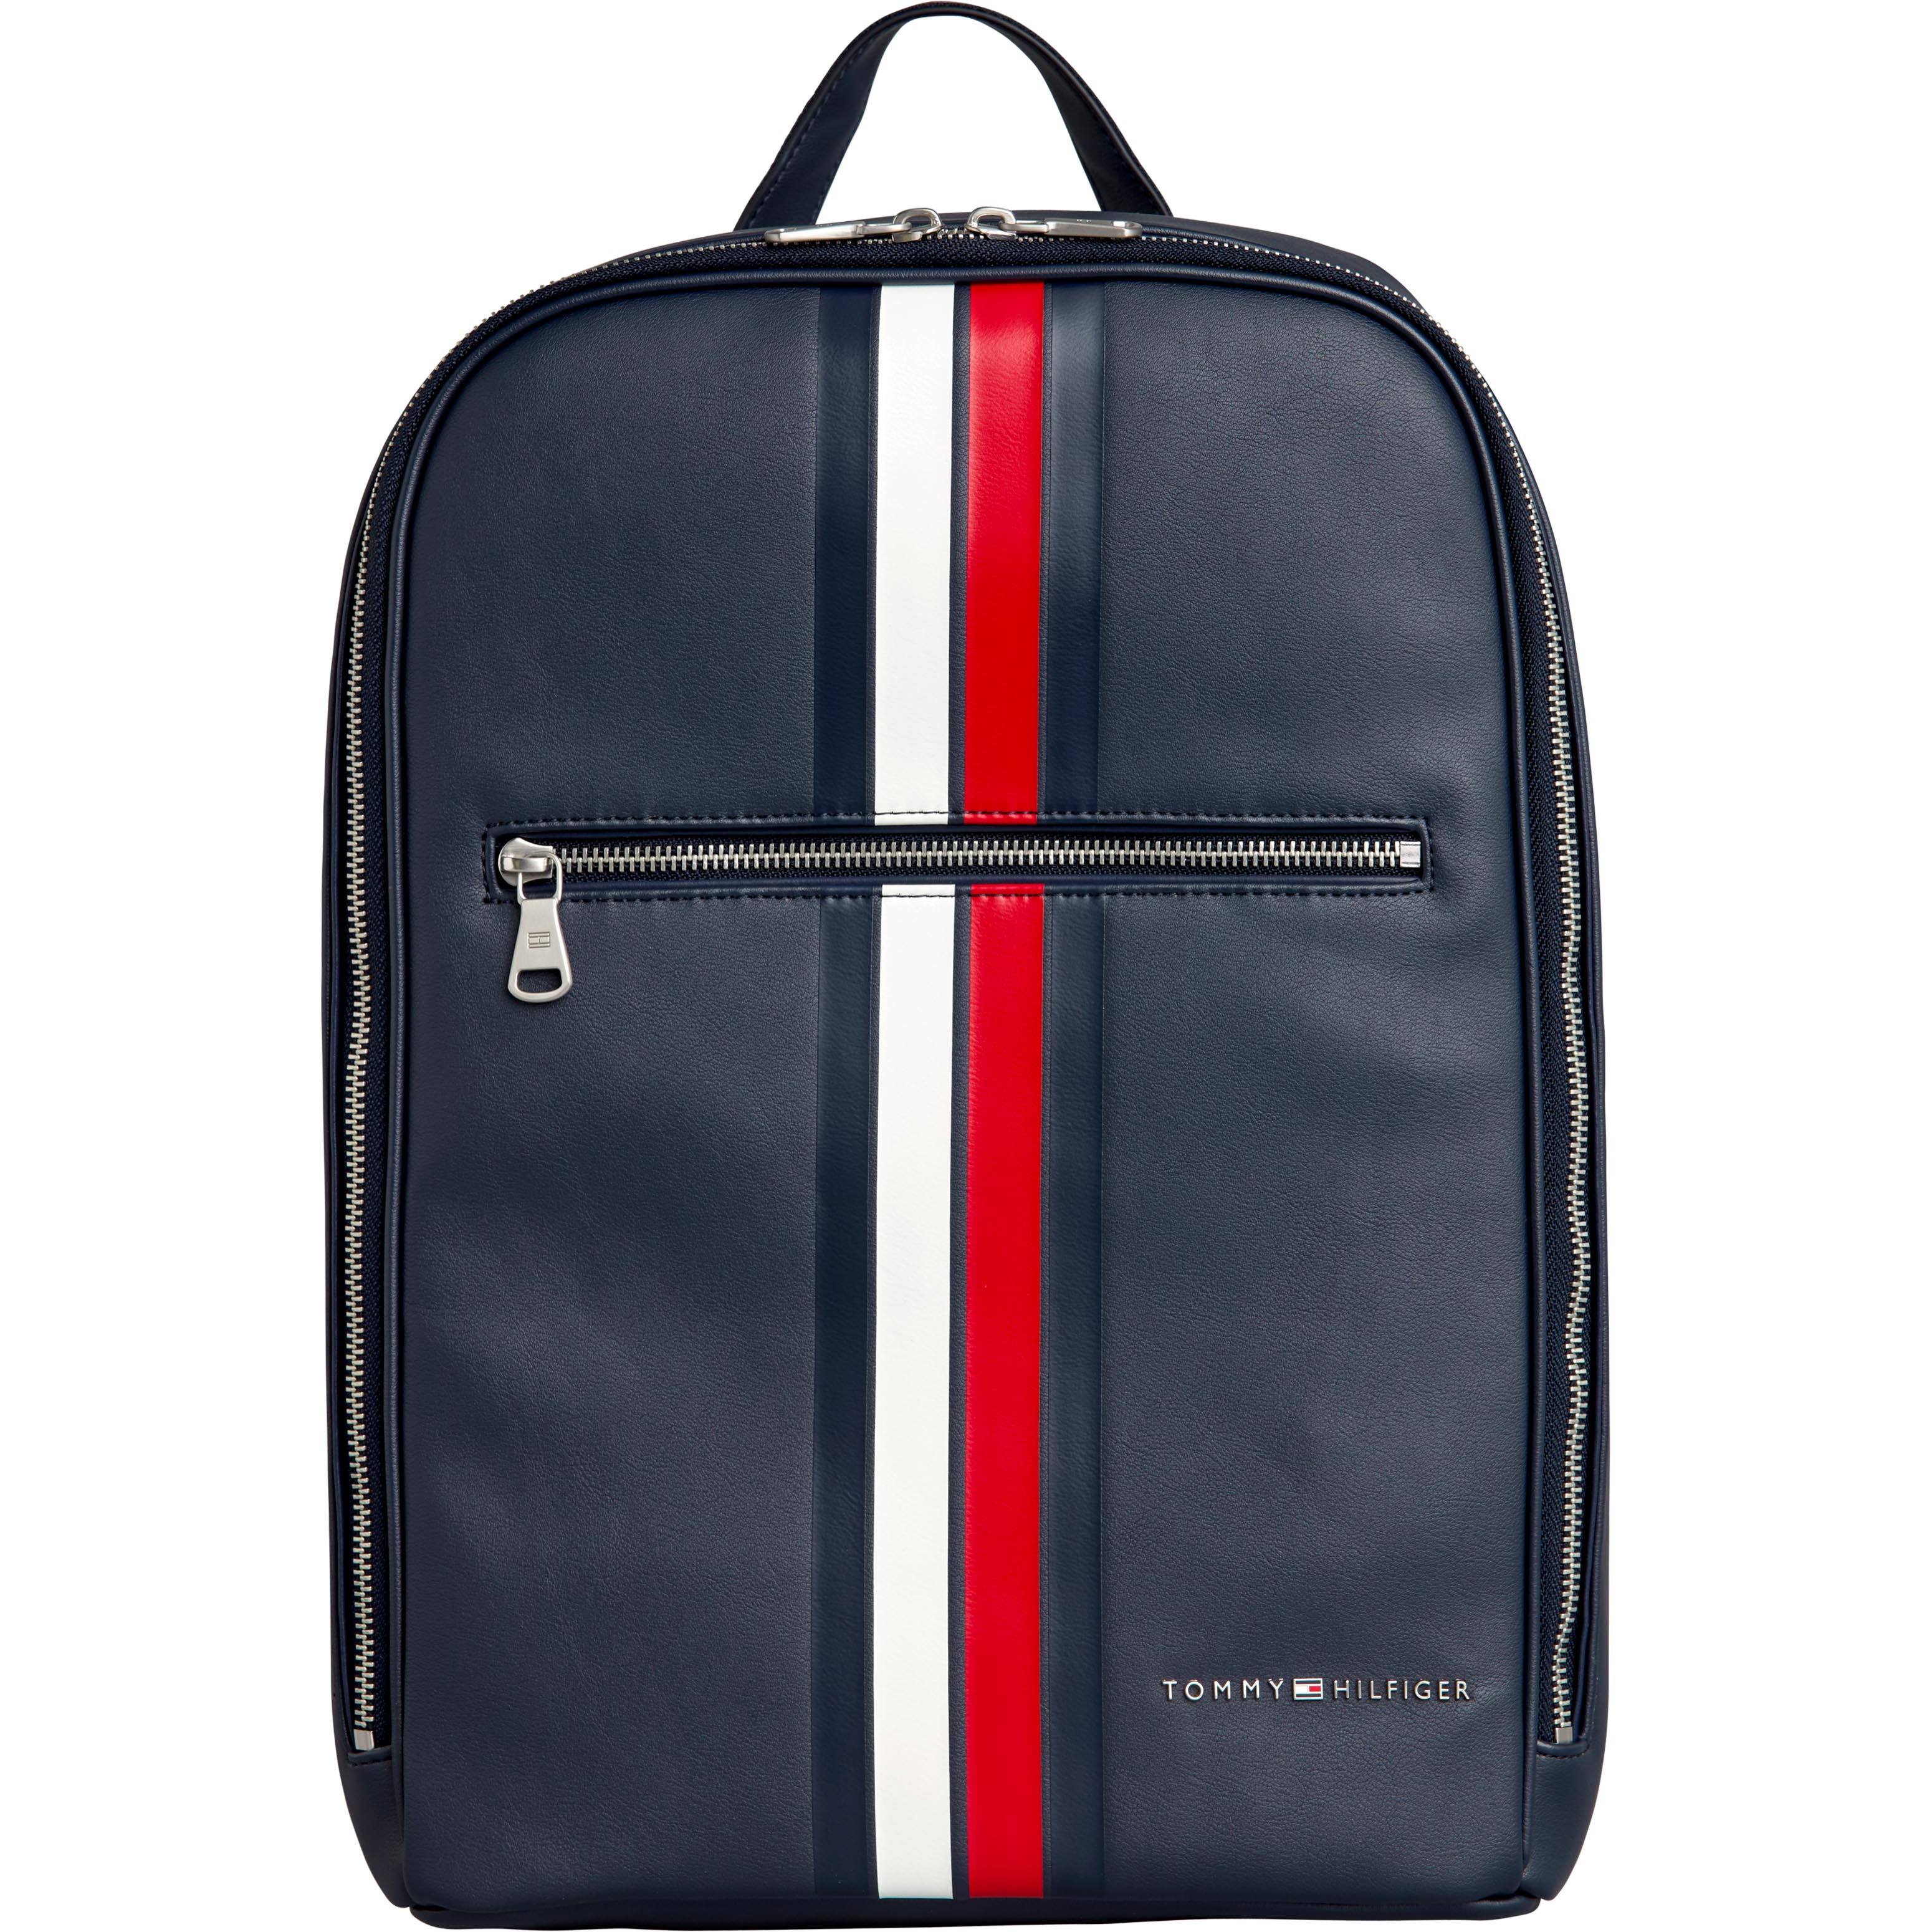 tommy hilfiger -  Cityrucksack TH METRO BACKPACK CORP